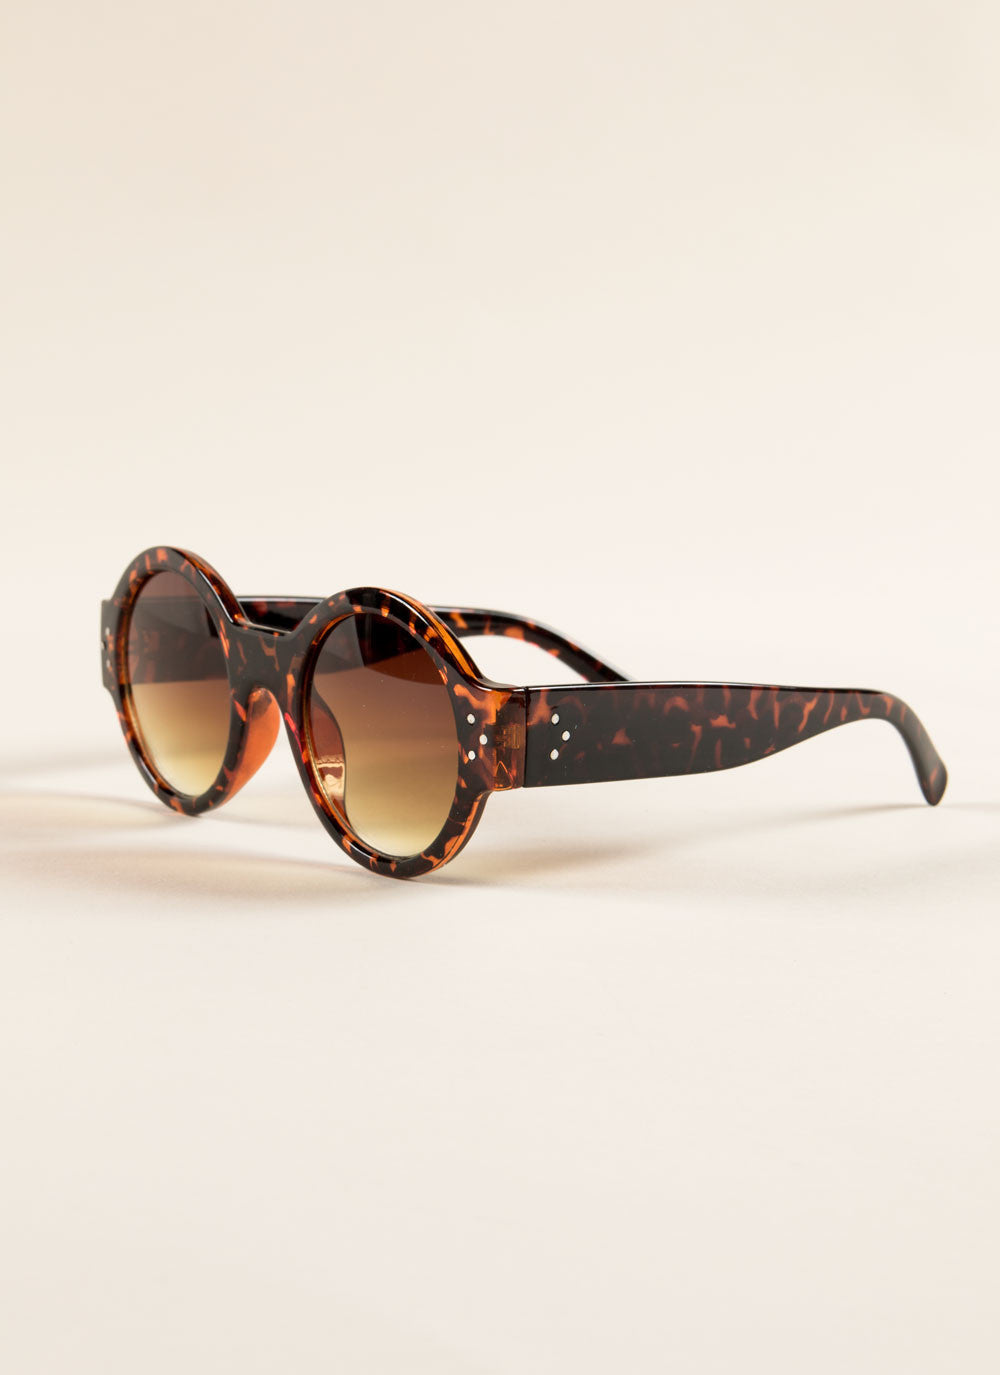 Retro Round Sunglasses , Accessories - Fashion Trend LA, Fashion Trend LA  - 4